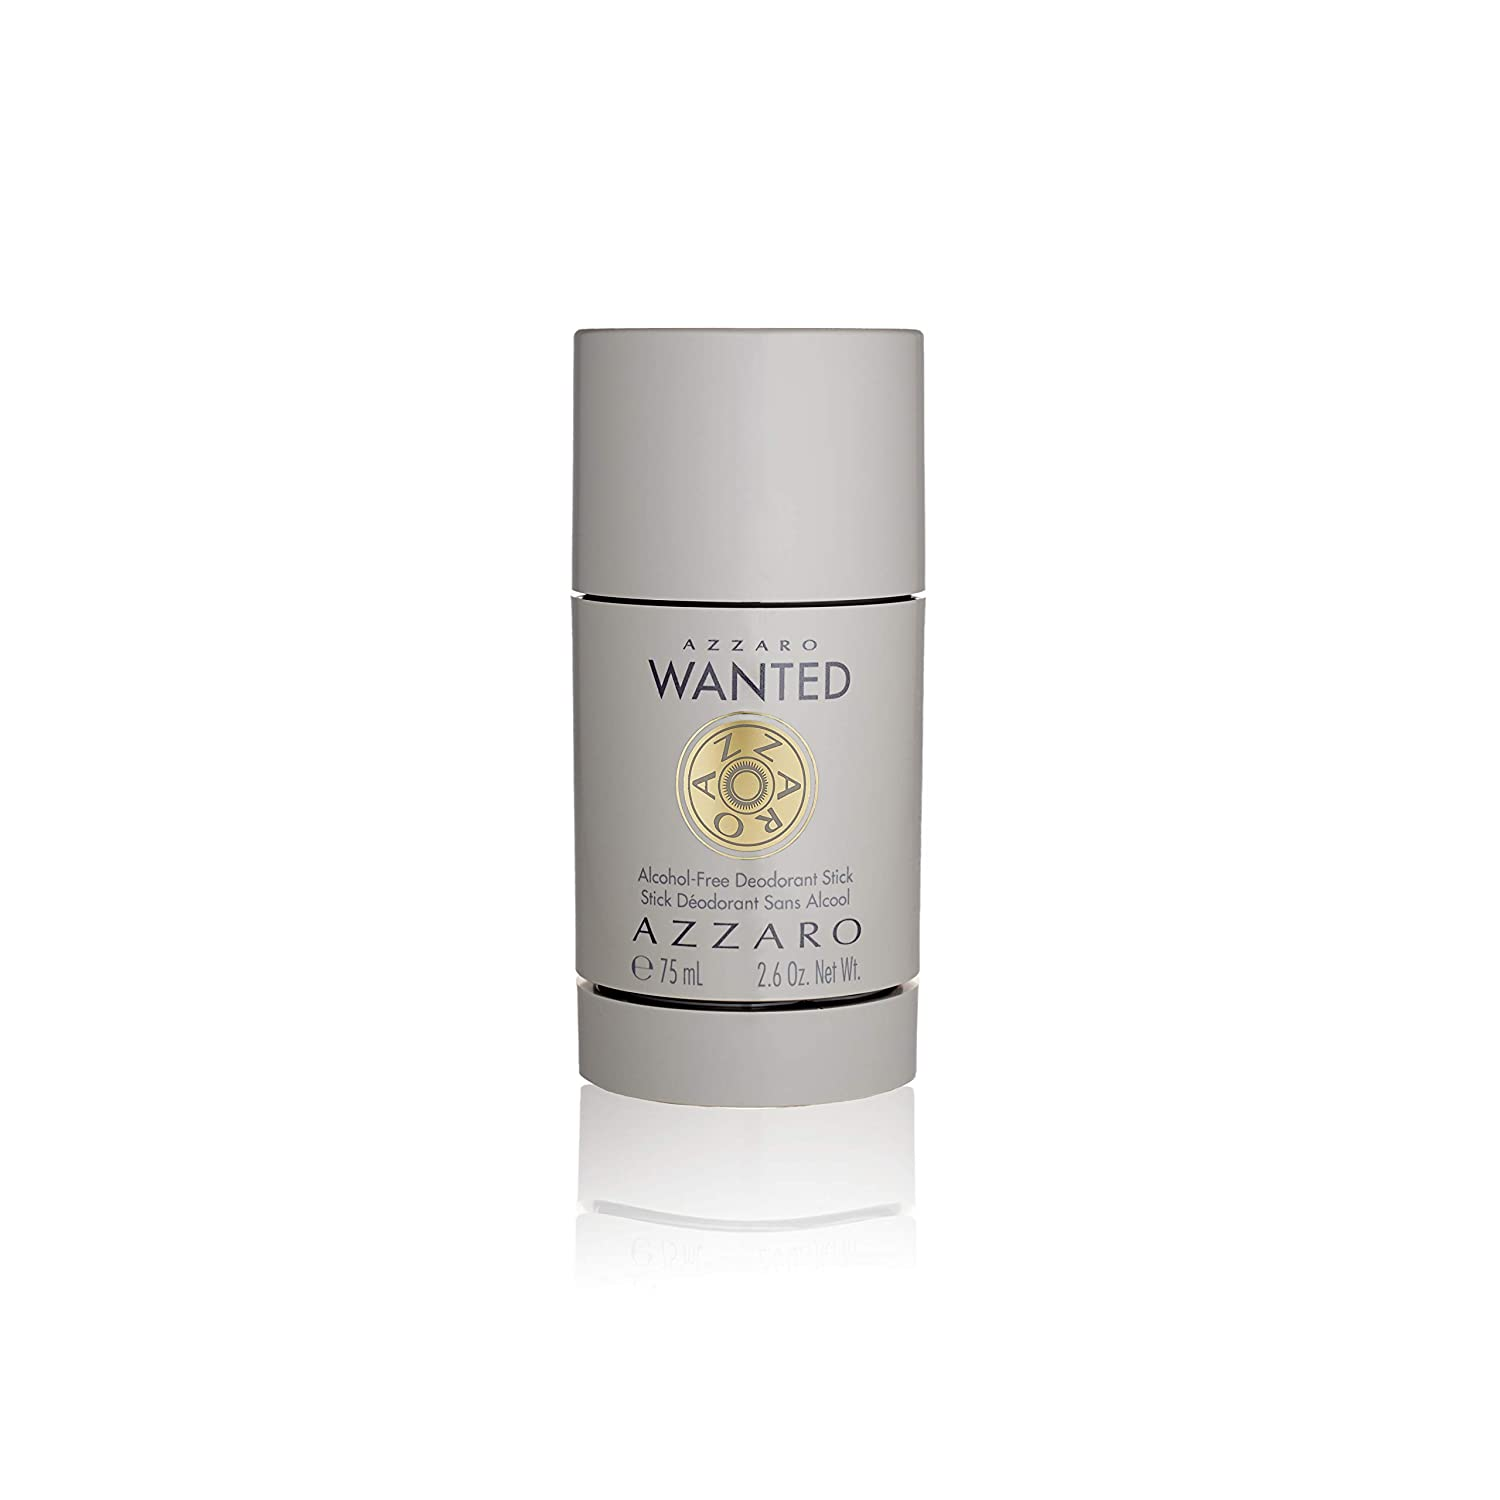 Azzaro Wanted Deodorant Stick Outlet ☆ Free Shipping for - Reservation Alcohol-Free Men